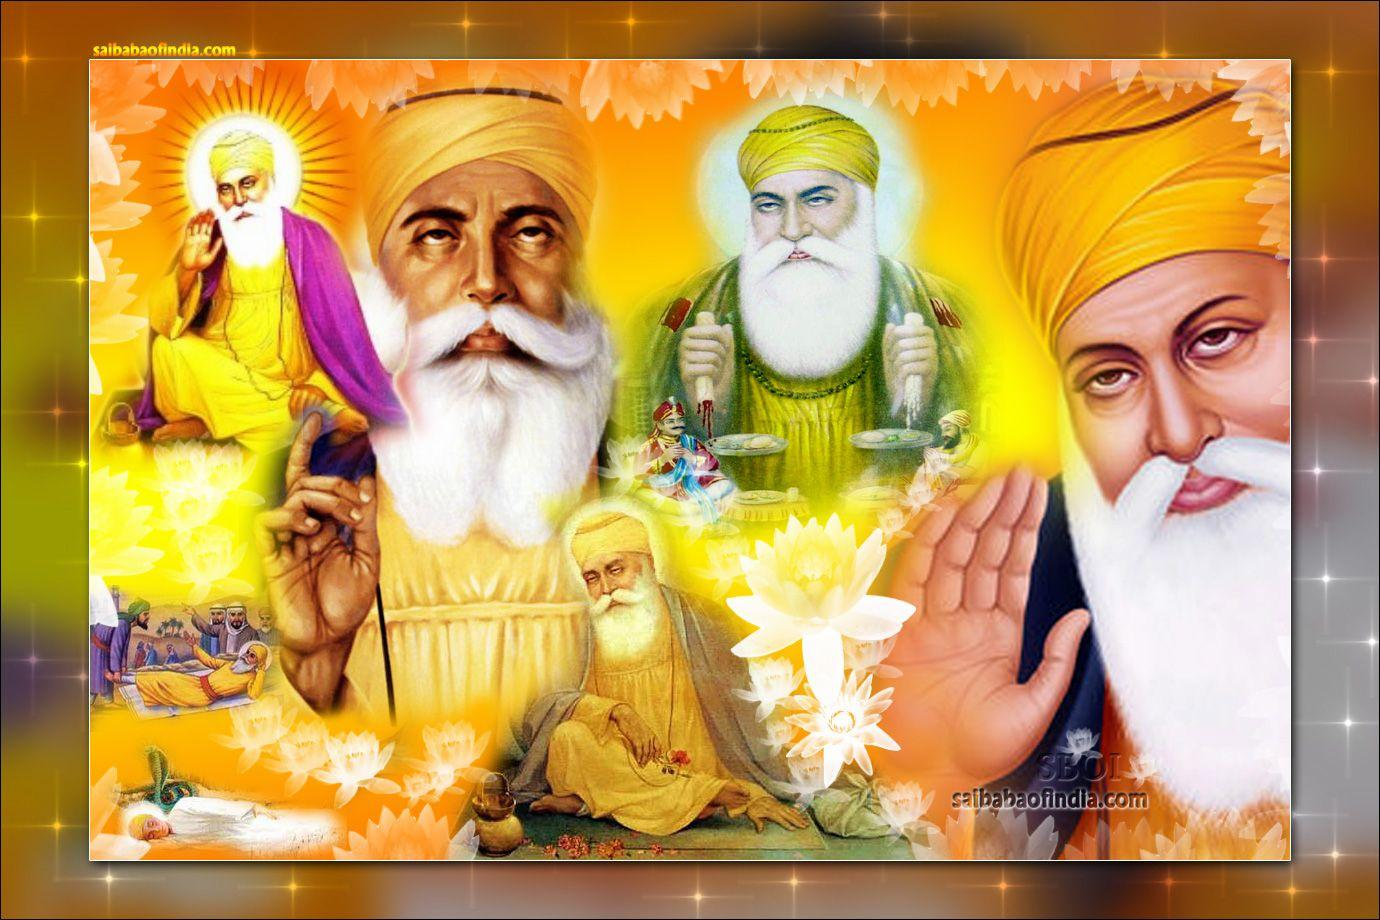 Guru-Nanak-dev-ji-Sikh-guru-his-life-birth - wallpaper